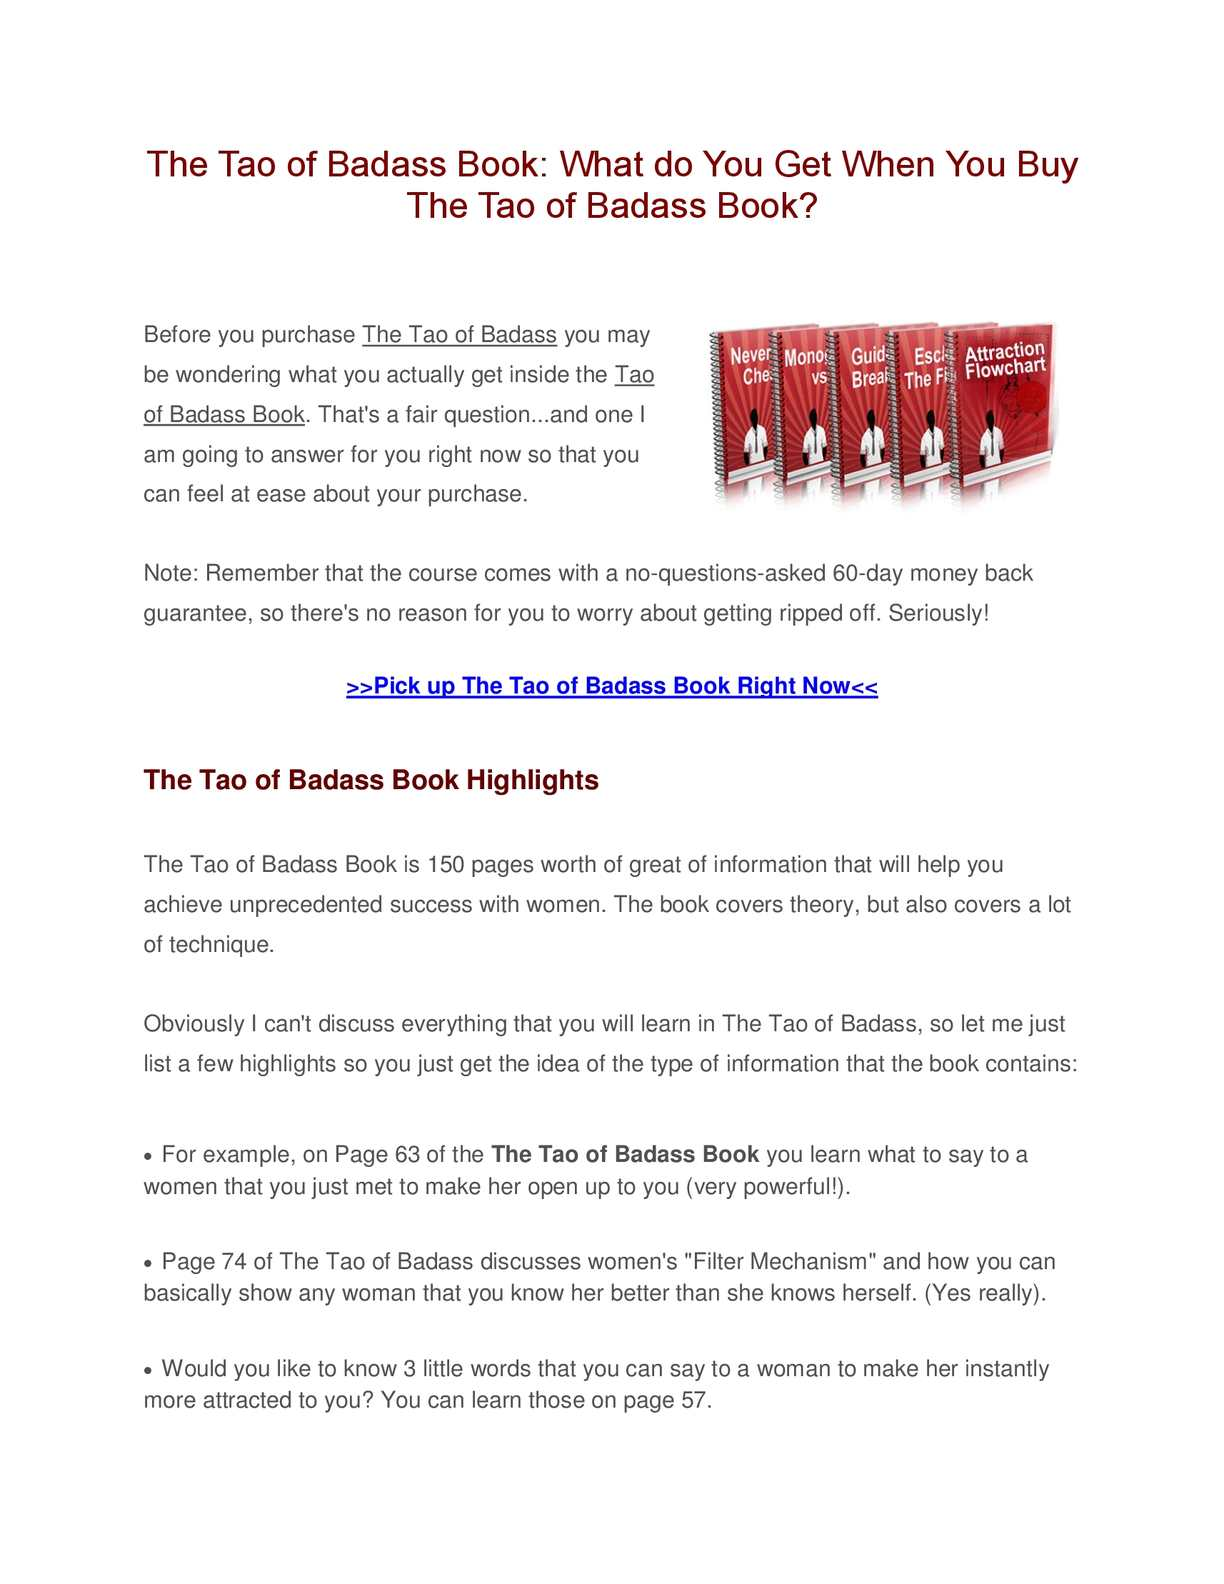 The Tao Of Badass Epub